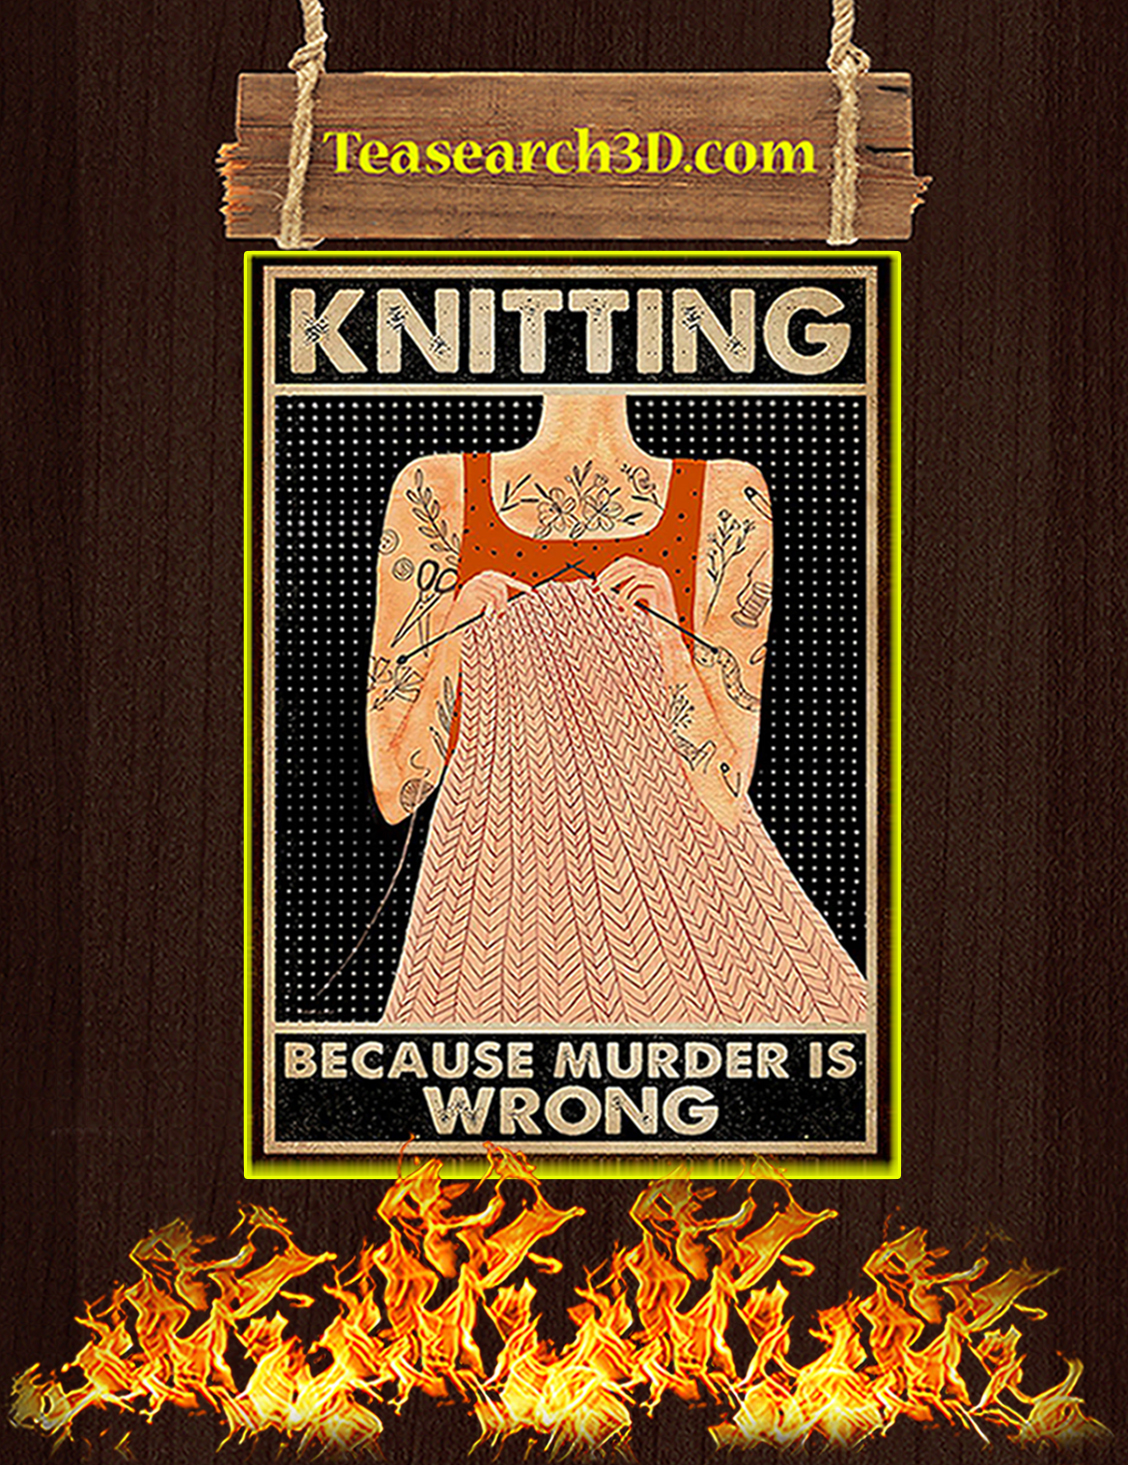 Knitting because murder is wrong poster A3